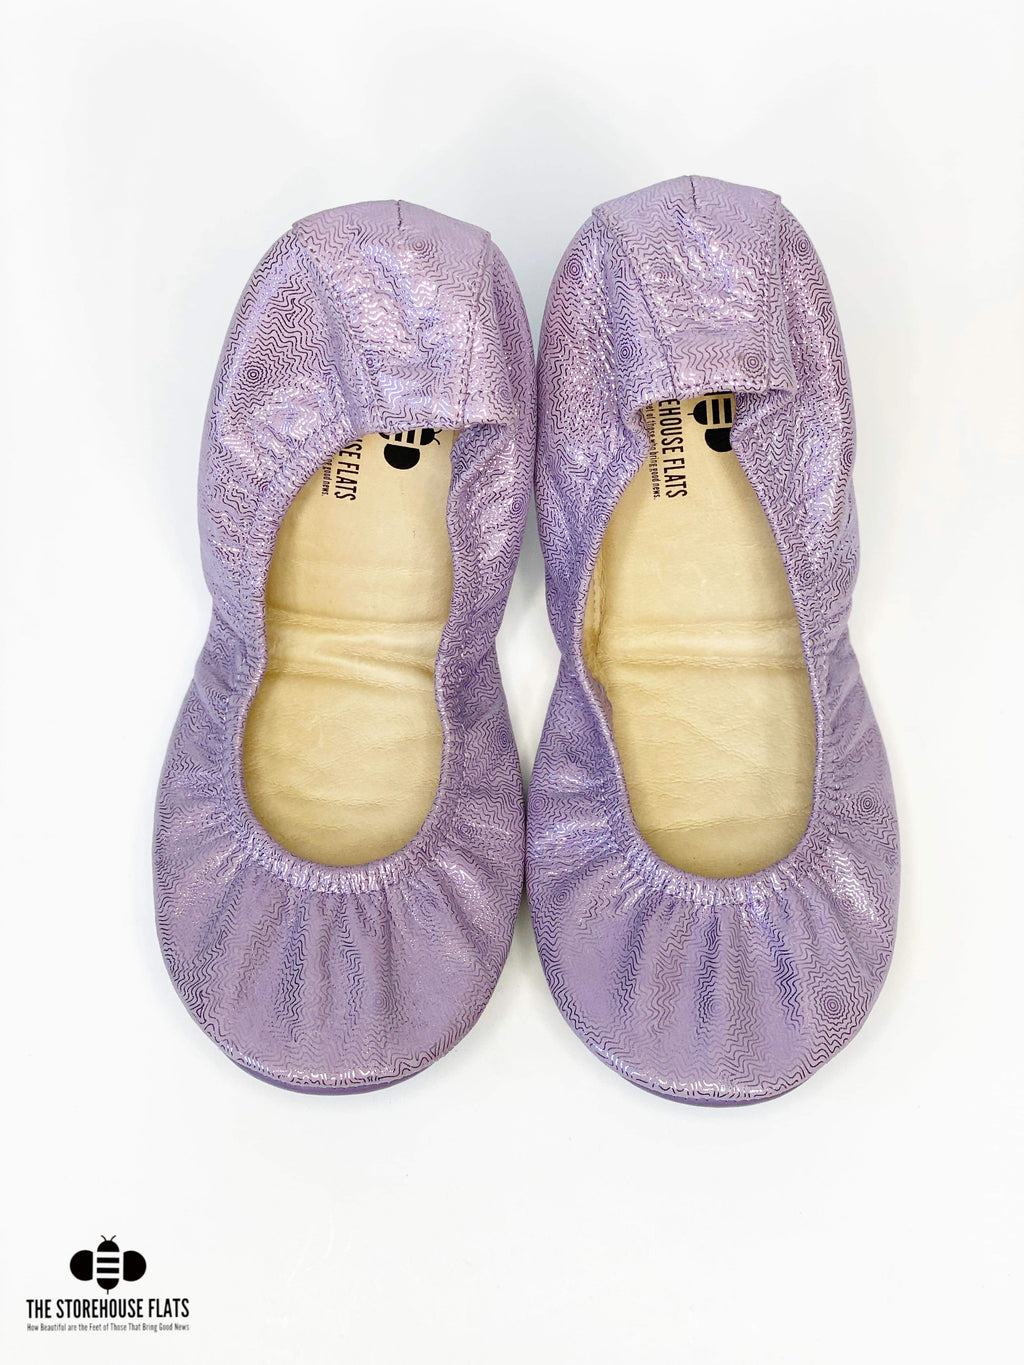 LAVENDER DAZE | MAY PREORDER - The Storehouse Flats